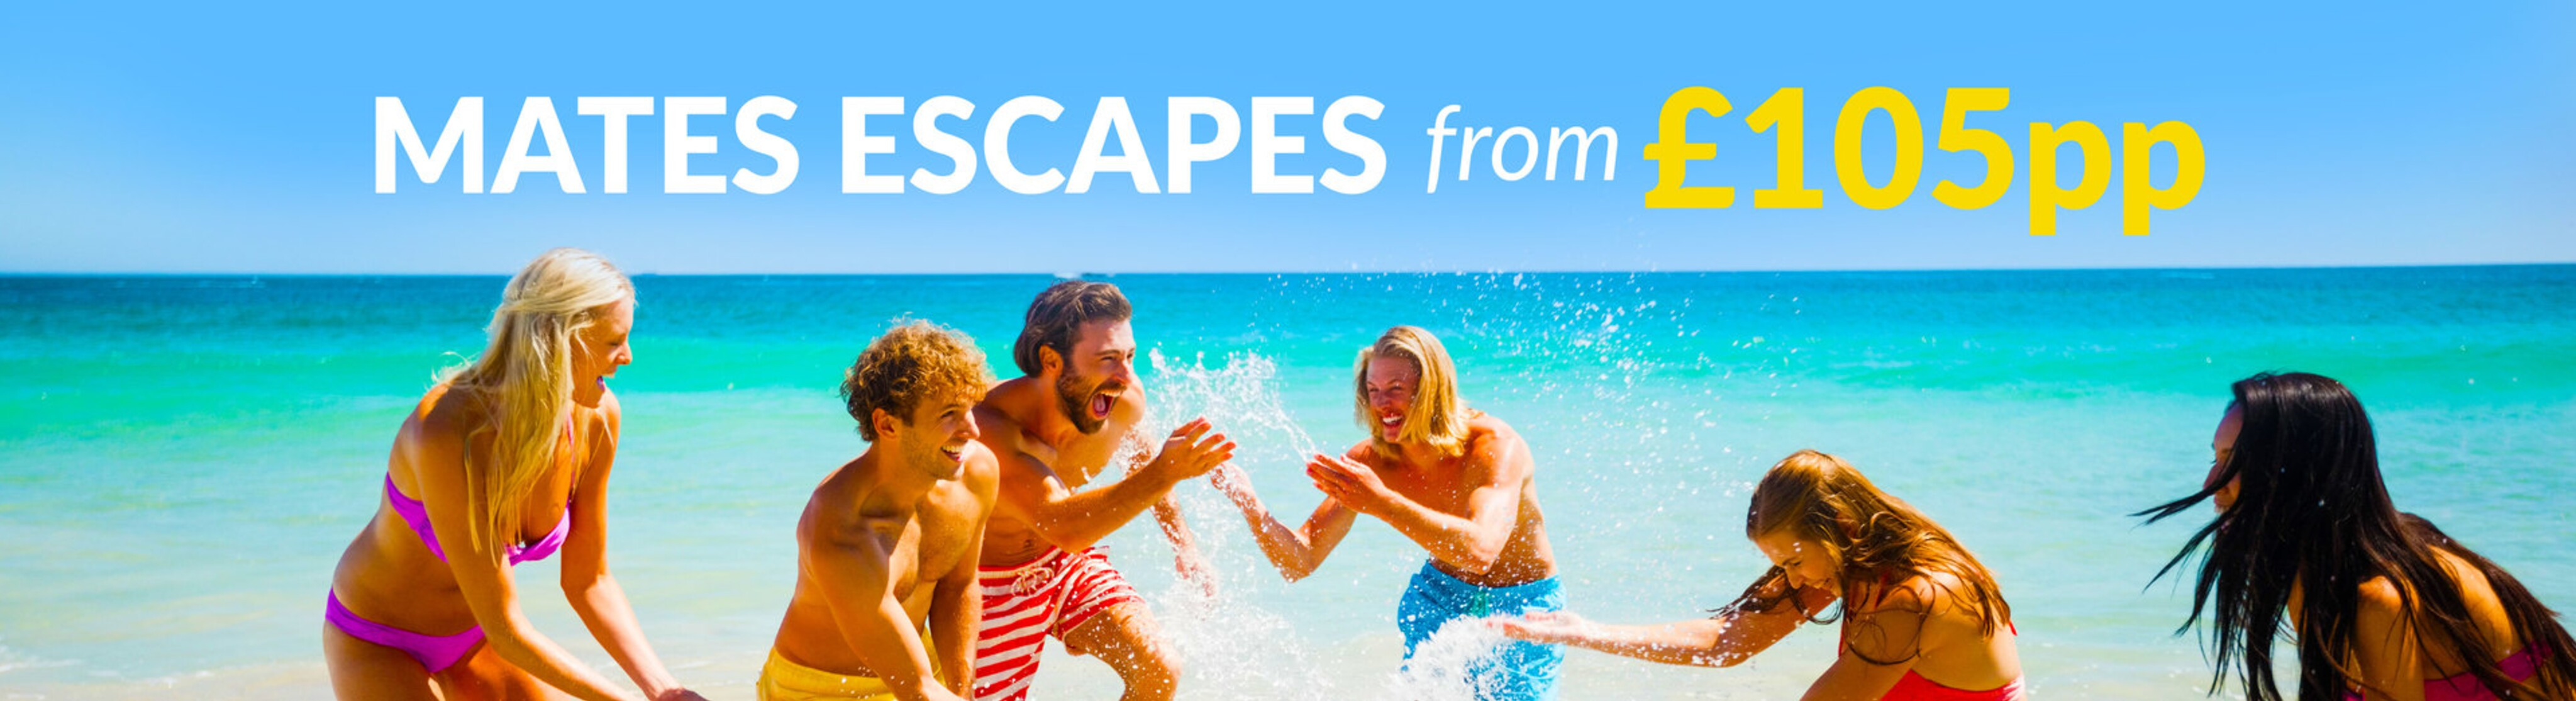 Deposits from £30pp for Mates Escapes